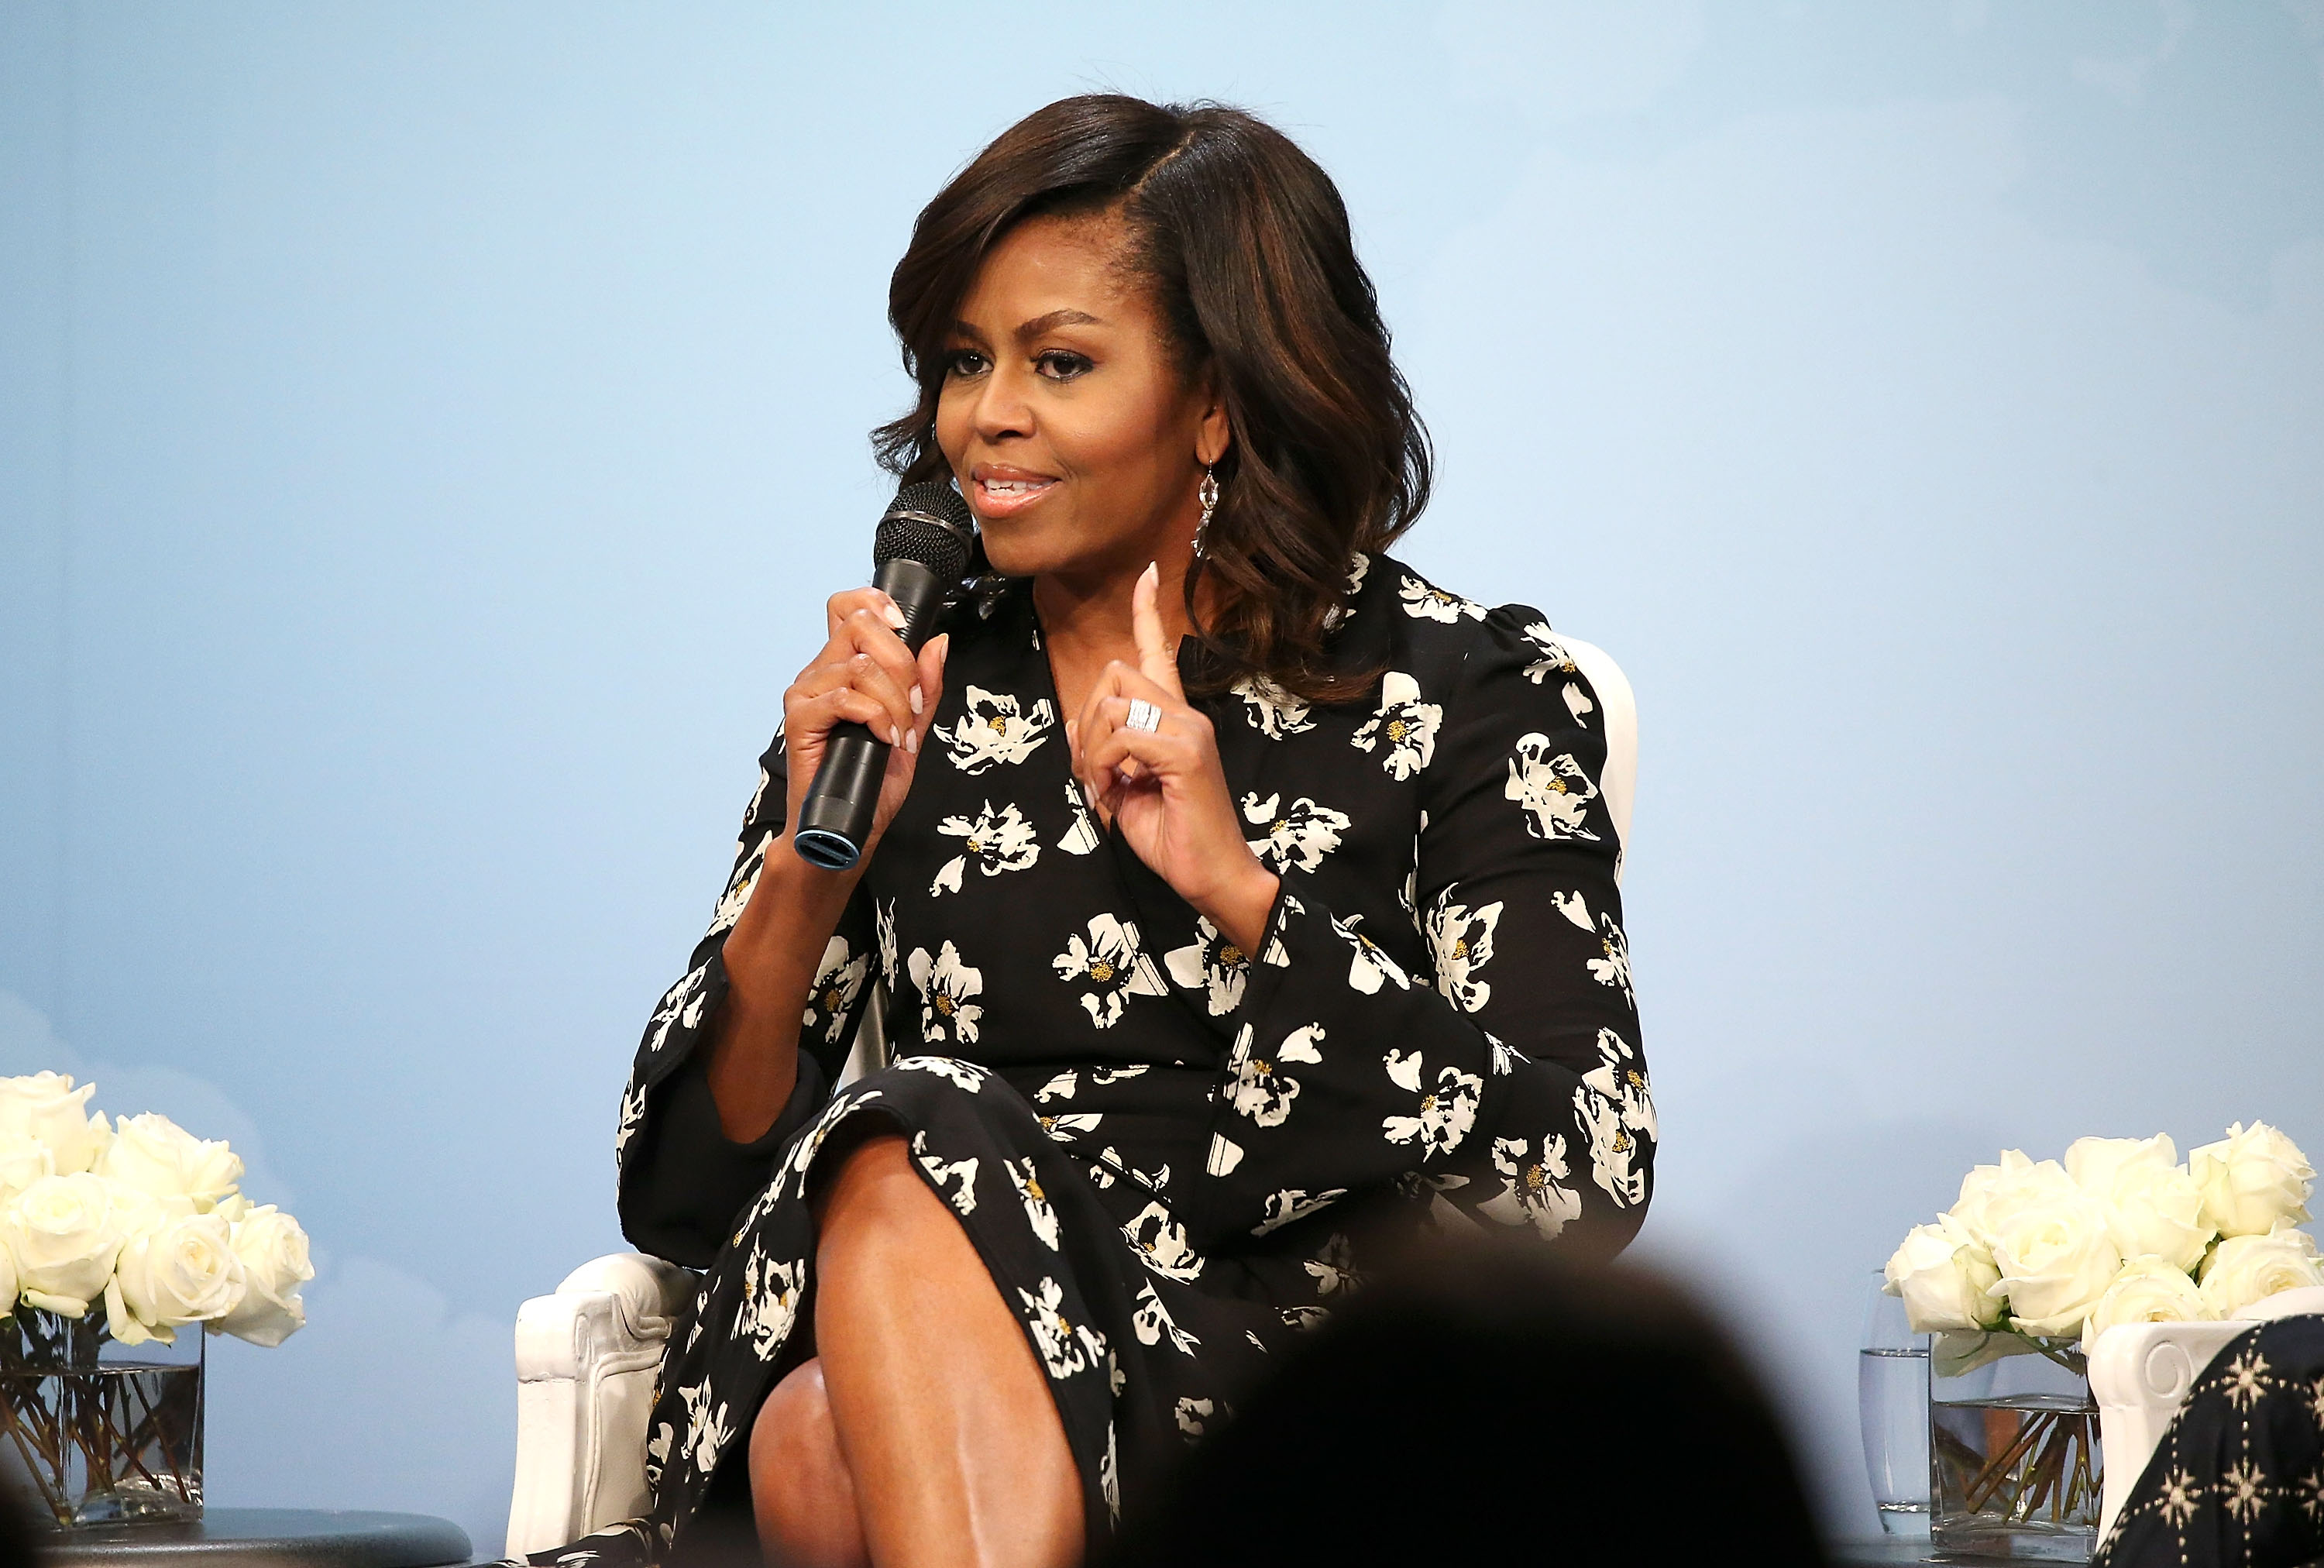 First Lady of the United States Michelle Obama speaks during a panel discussion at Glamour Hosts  A Brighter Future: A Global Conversation on Girls' Education  with First Lady Michelle Obama at The Newseum on October 11, 2016 in Washington, DC.  (Photo by Paul Morigi/Getty Images for Glamour)